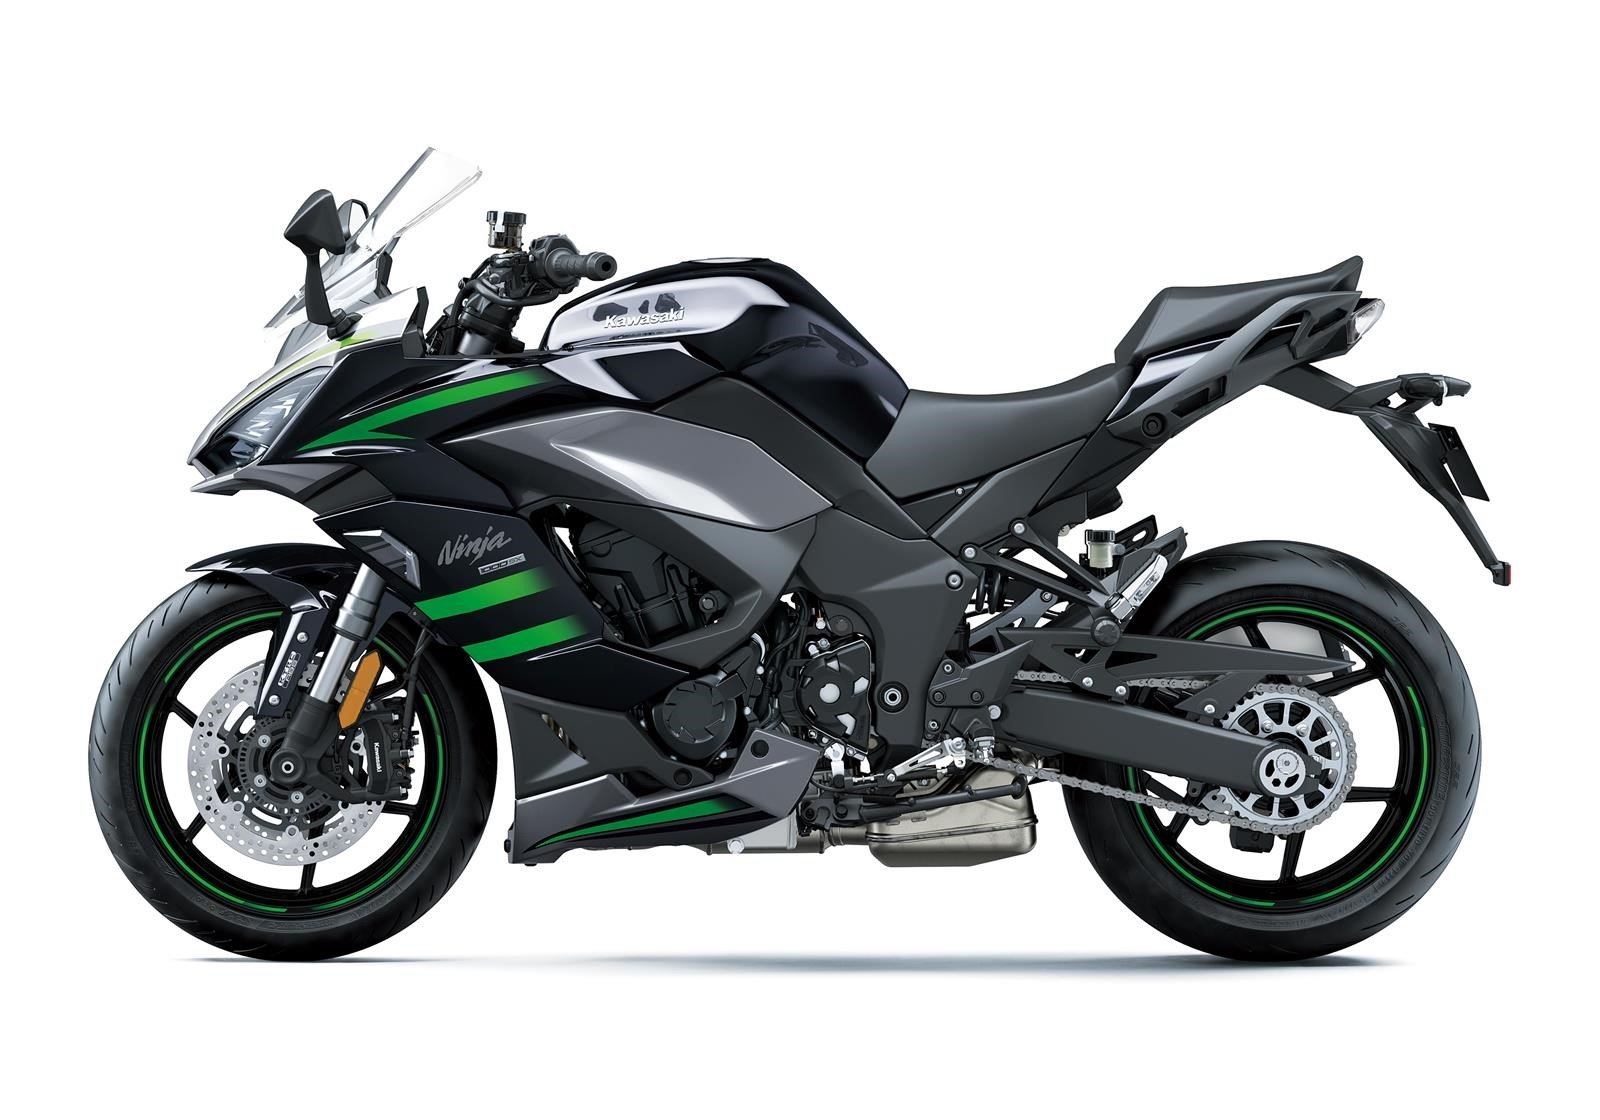 New 2020 Kawasaki Ninja 1000 SX SE **FREE DELIVERY** For Sale (picture 3 of 6)